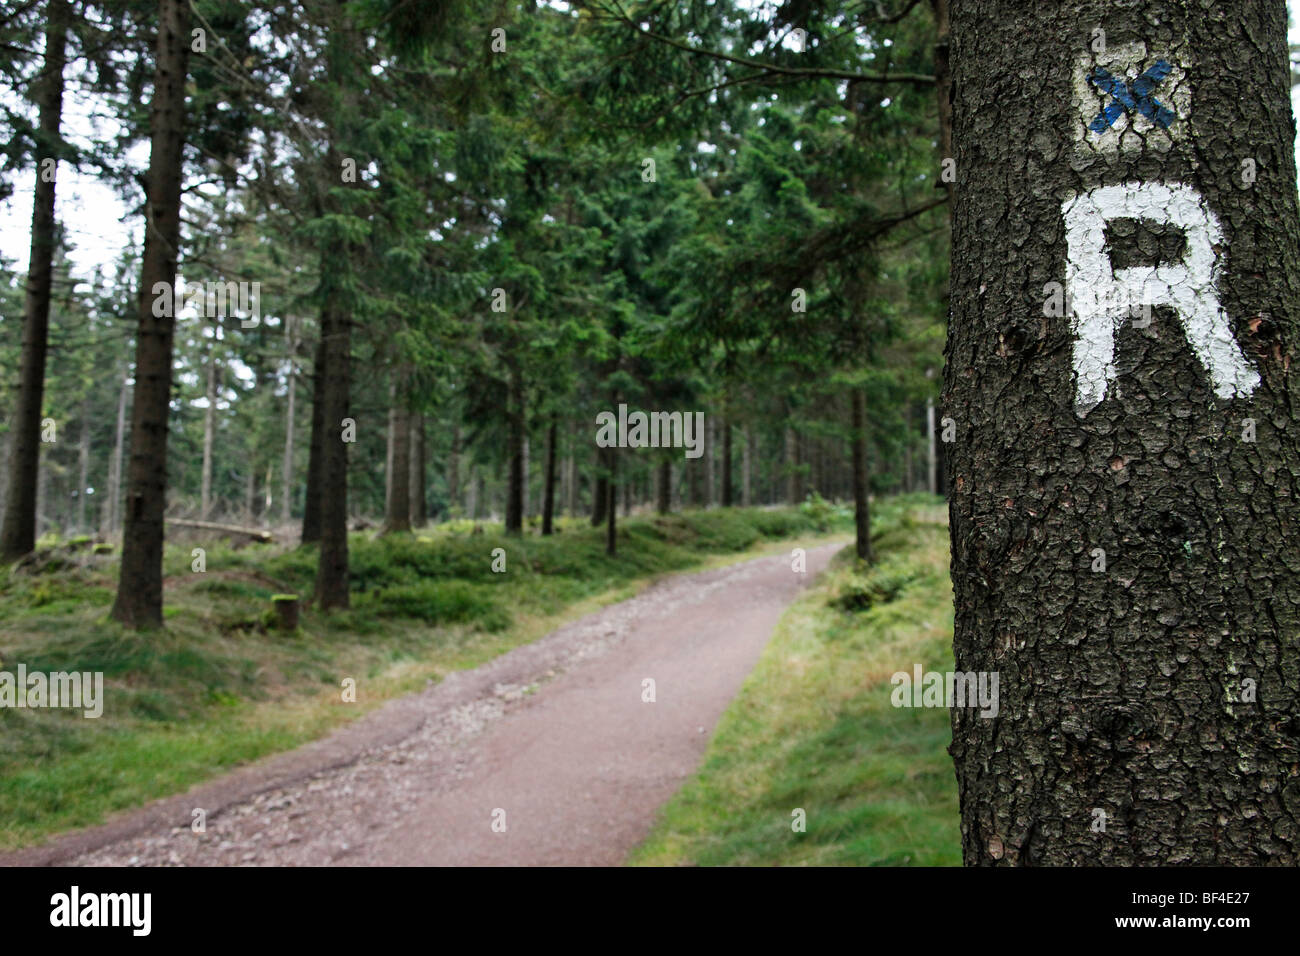 R as a sign for the Rennsteig hiking trail, an international trail, Oberhof, Thuringia, Germany, Europe - Stock Image